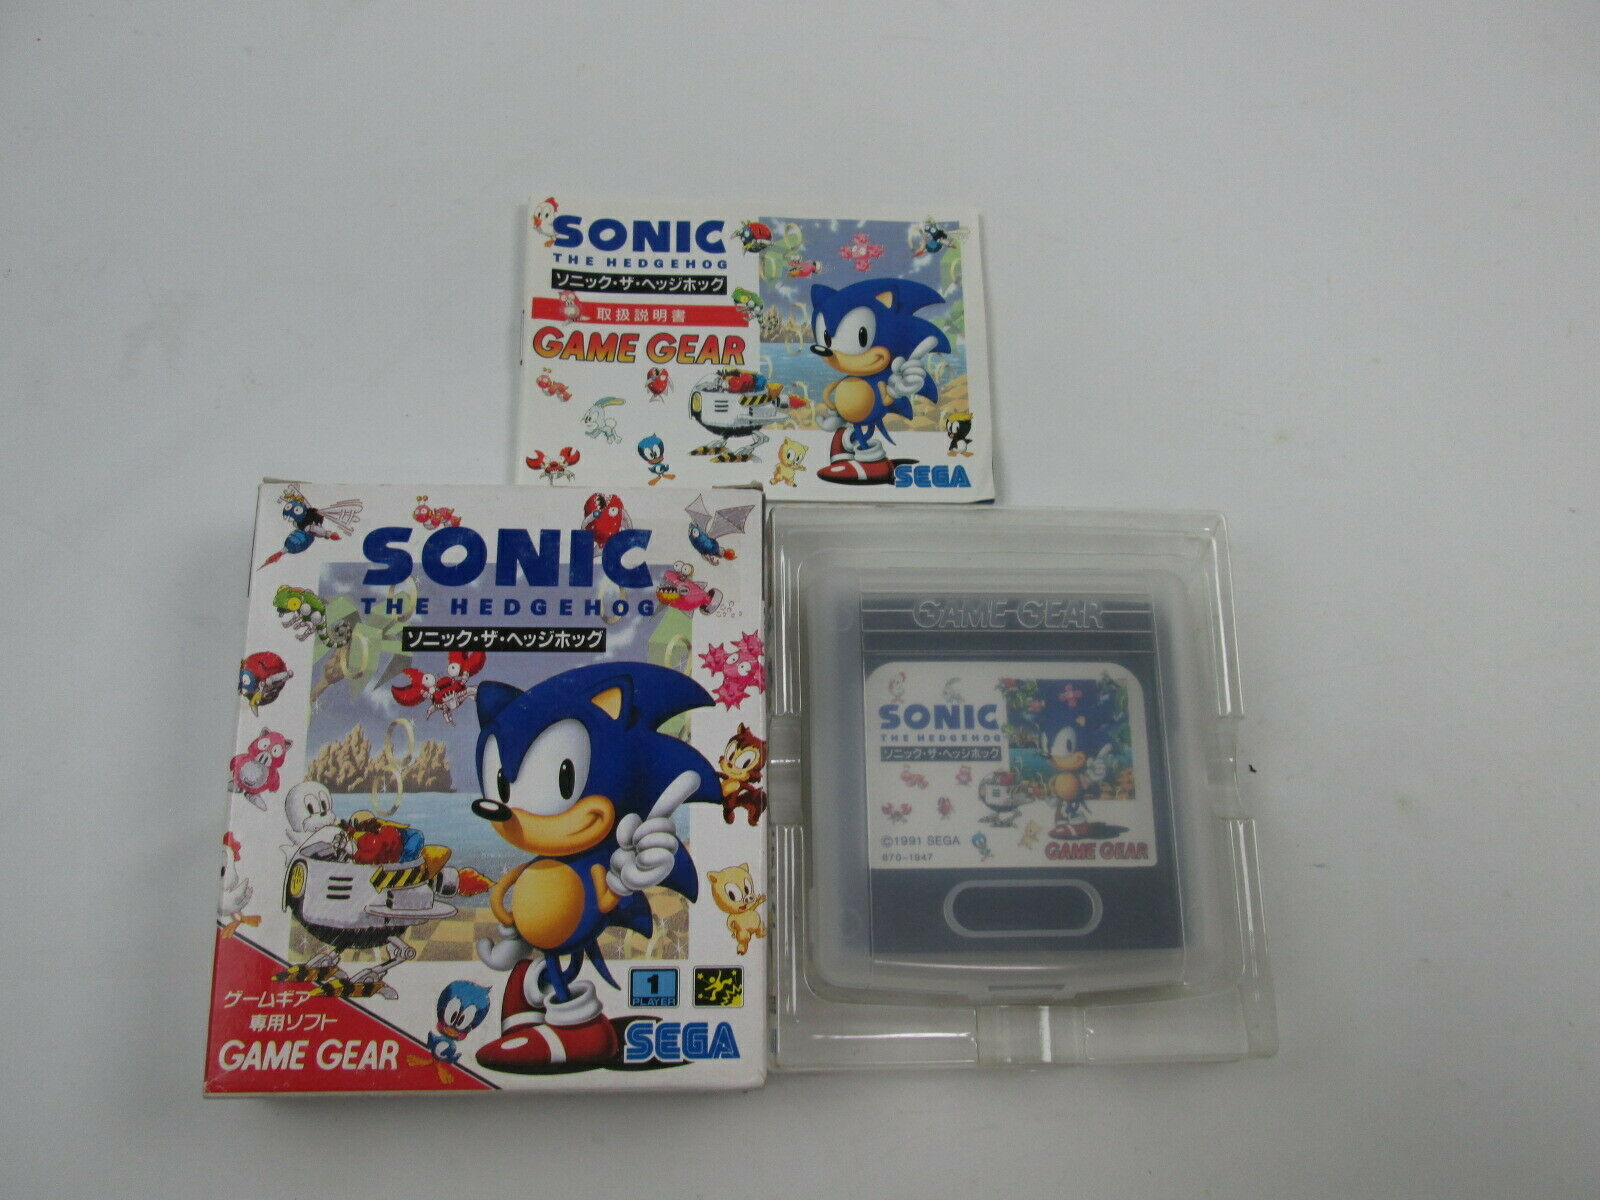 Sonic The Hedgehog Game Gear Gg Japan Ver Sega For Sale Online